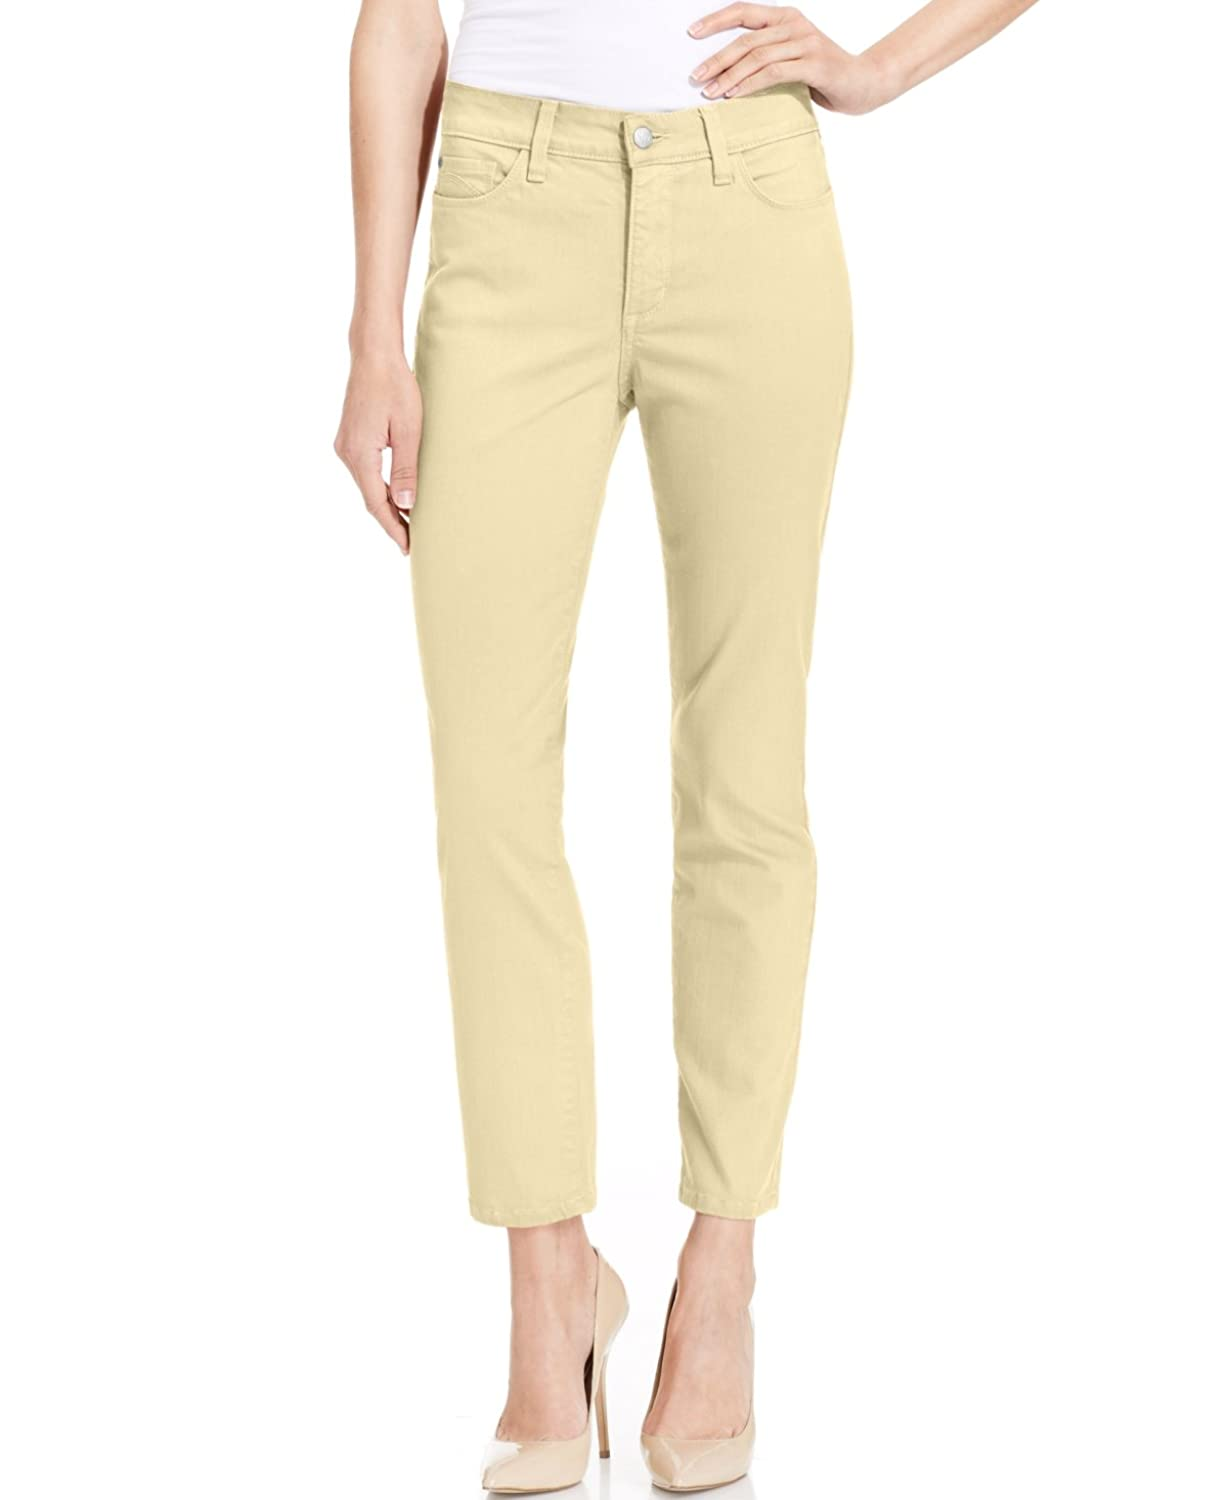 NYDJ Petite Clarissa Colored Wash Ankle Jeans